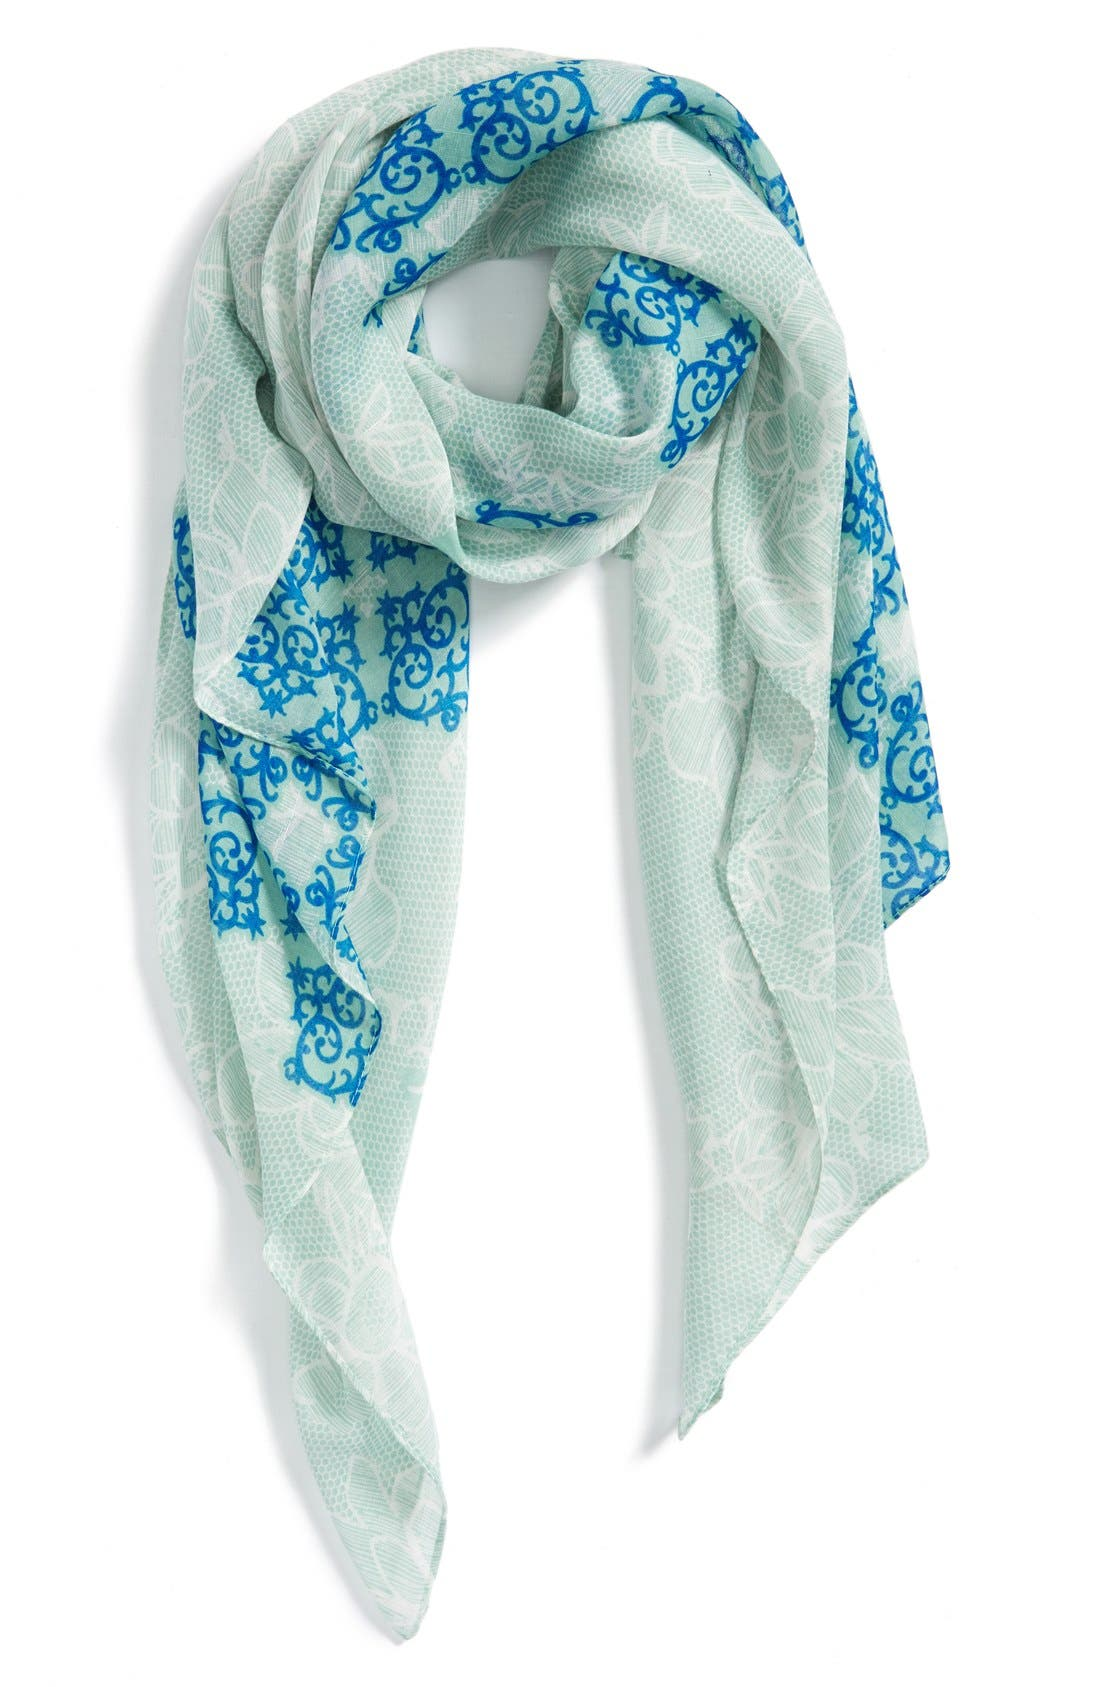 Alternate Image 1 Selected - Evelyn K 'Lacy Floral Number' Print Scarf